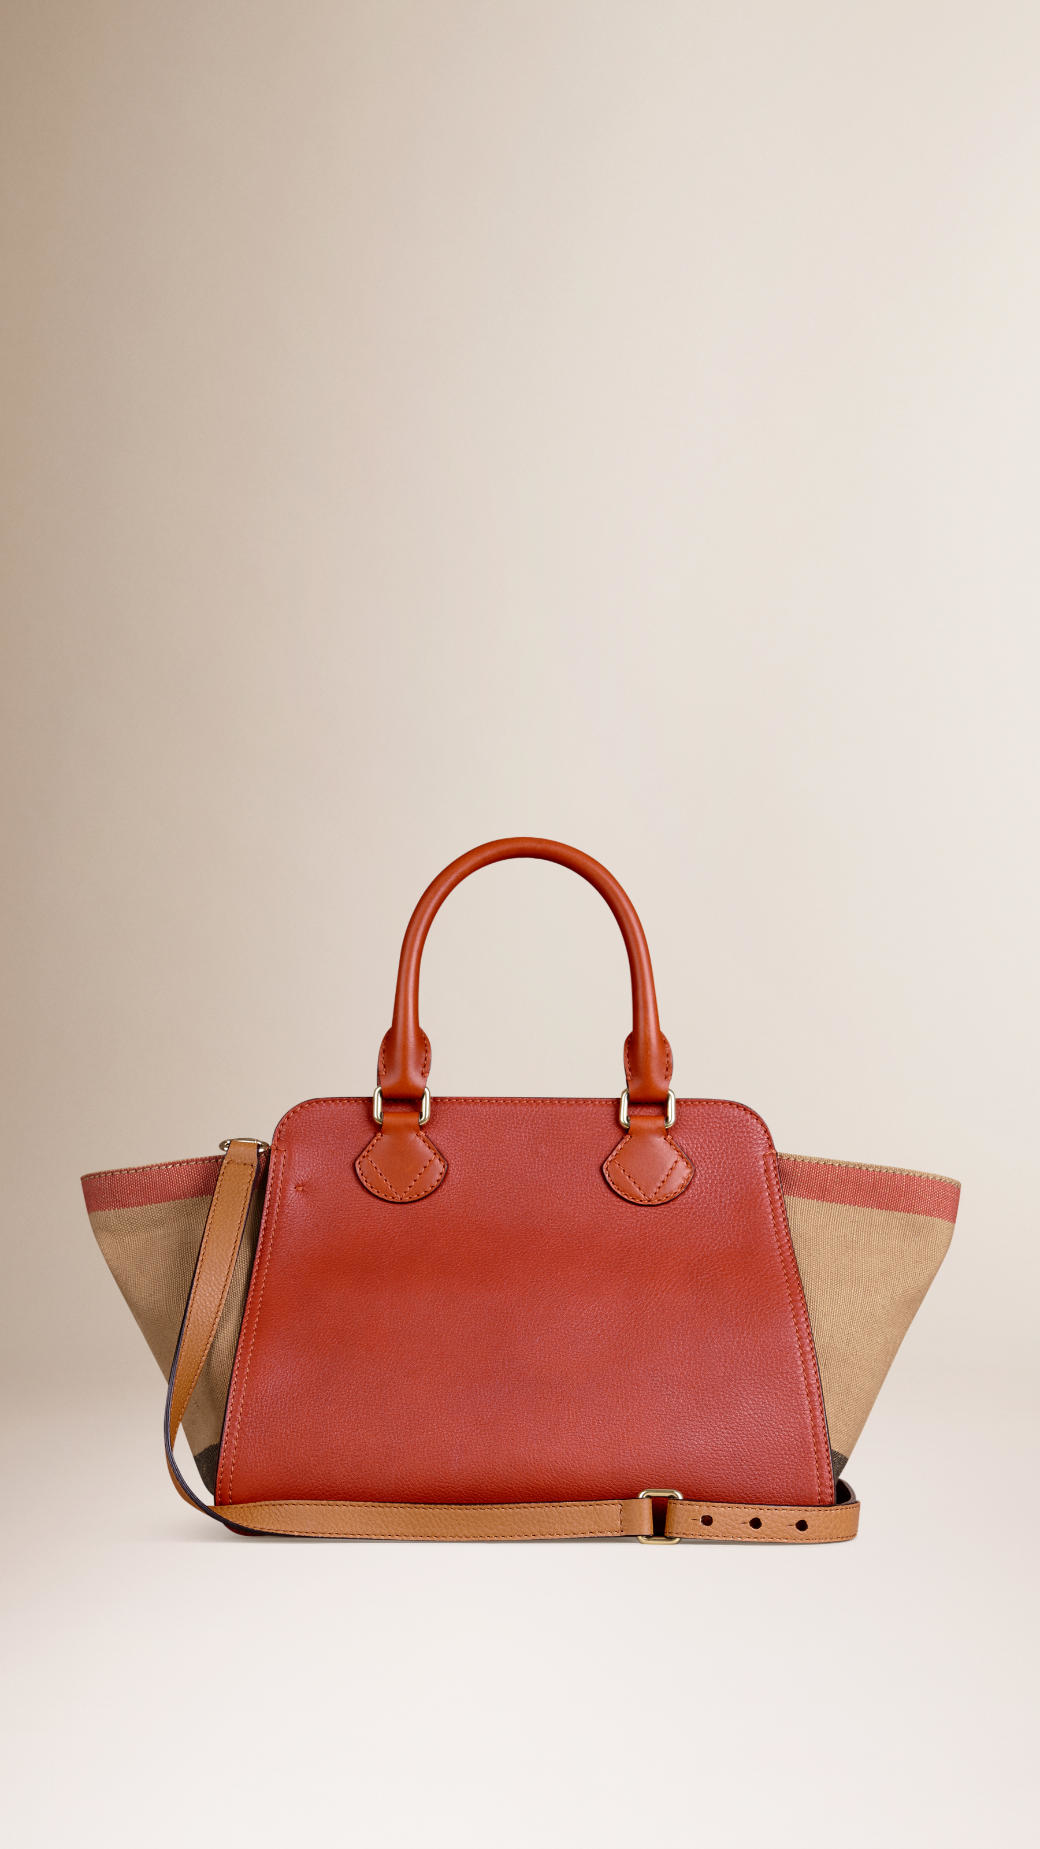 1578982109b1 Lyst - Burberry Medium Canvas Check And Leather Tote Bag in Brown